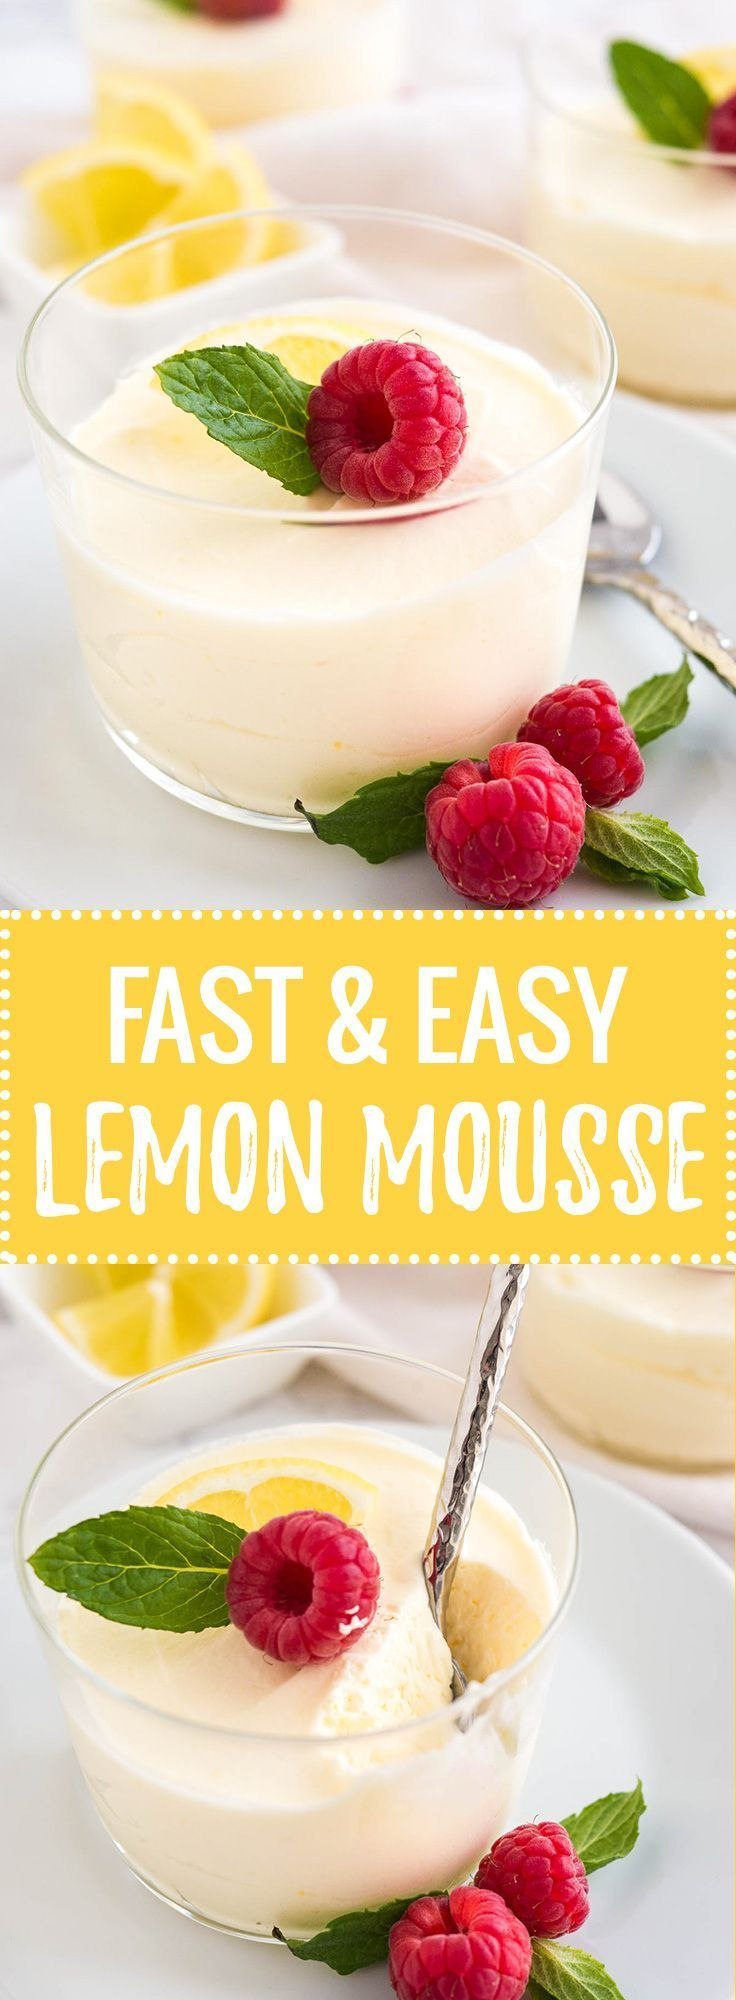 This easy Lemon Curd Mousse has only 3 ingredients and can be made in minutes! A perfect cold summer dessert that will impress your guests and is dangerously delicious, yet SO easy to make from scratc(Cake Ingredients In A Jar)